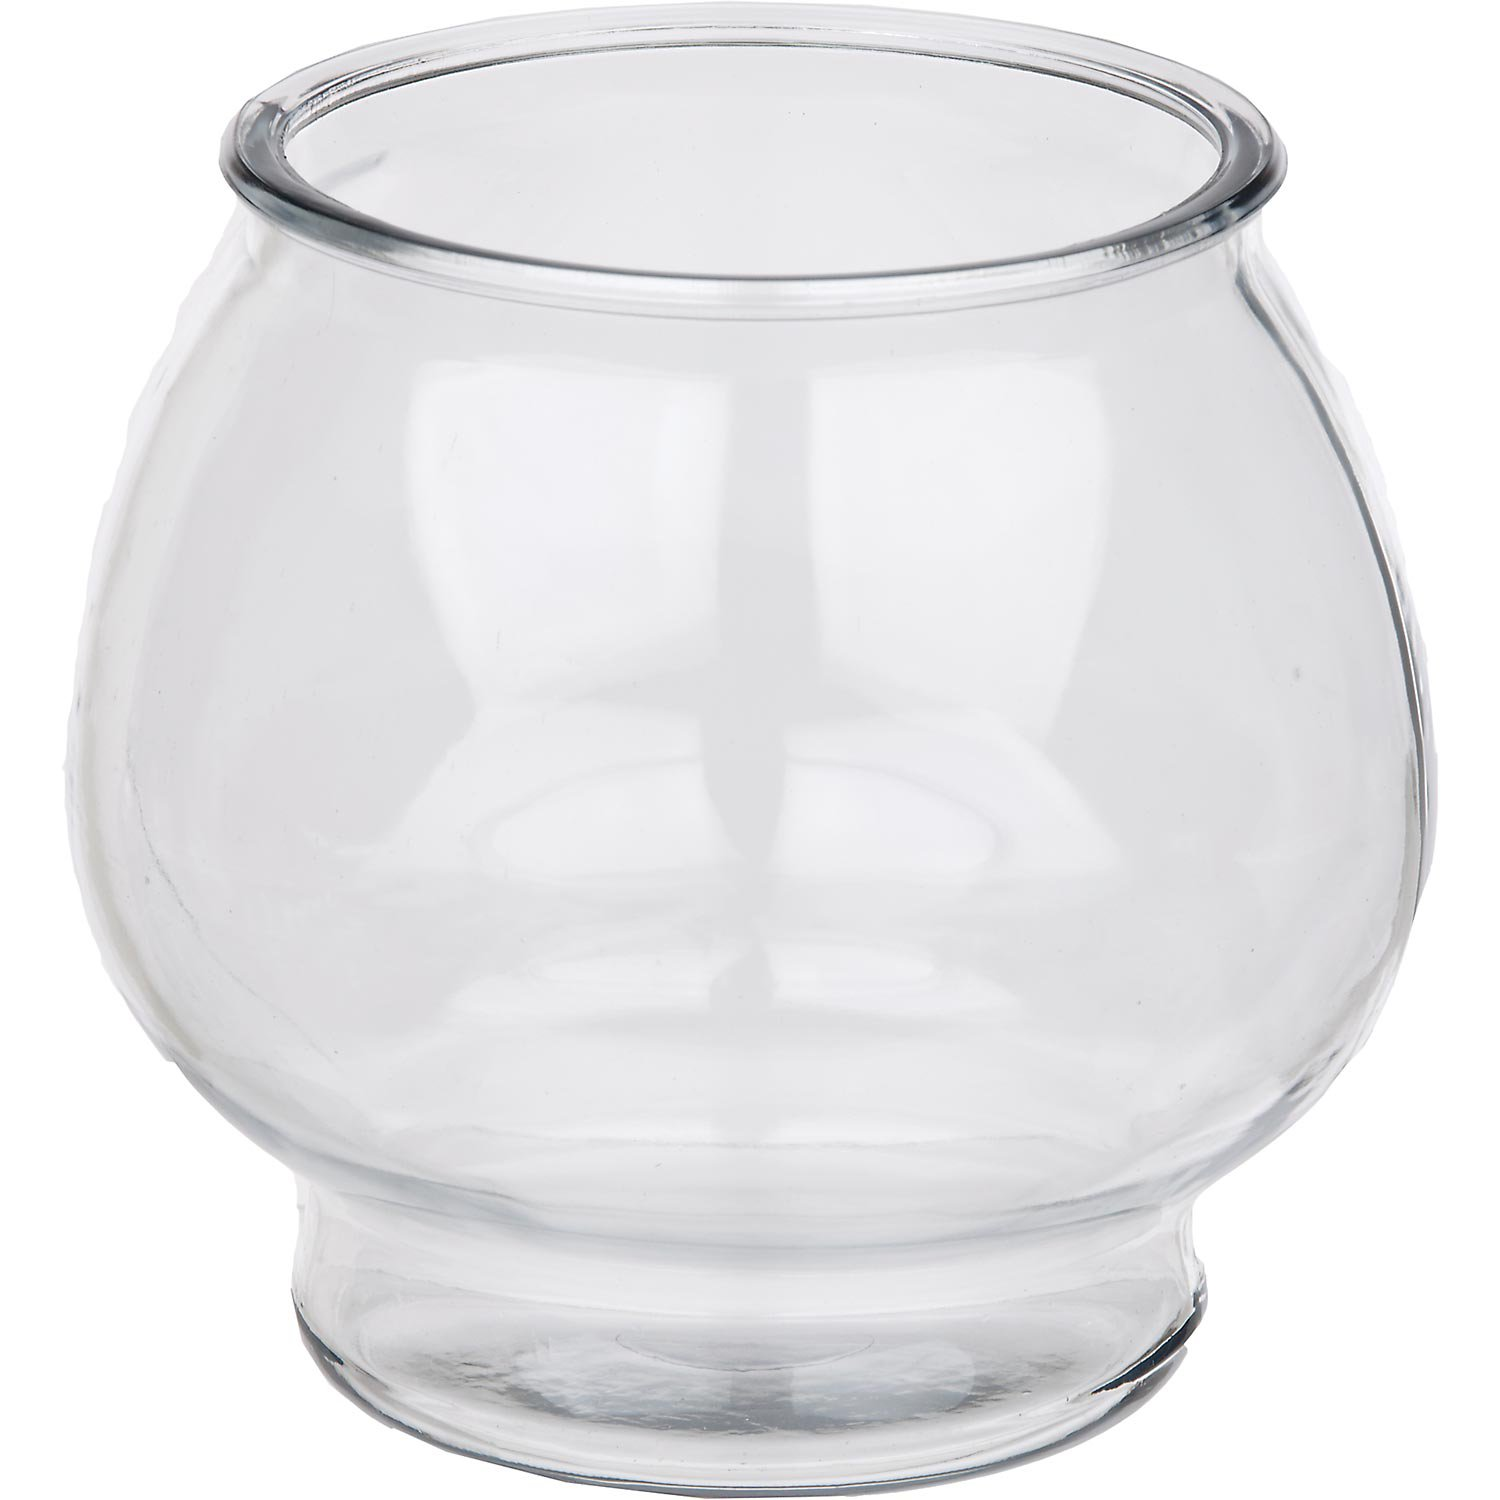 Petco Glass Footed Betta Bowl